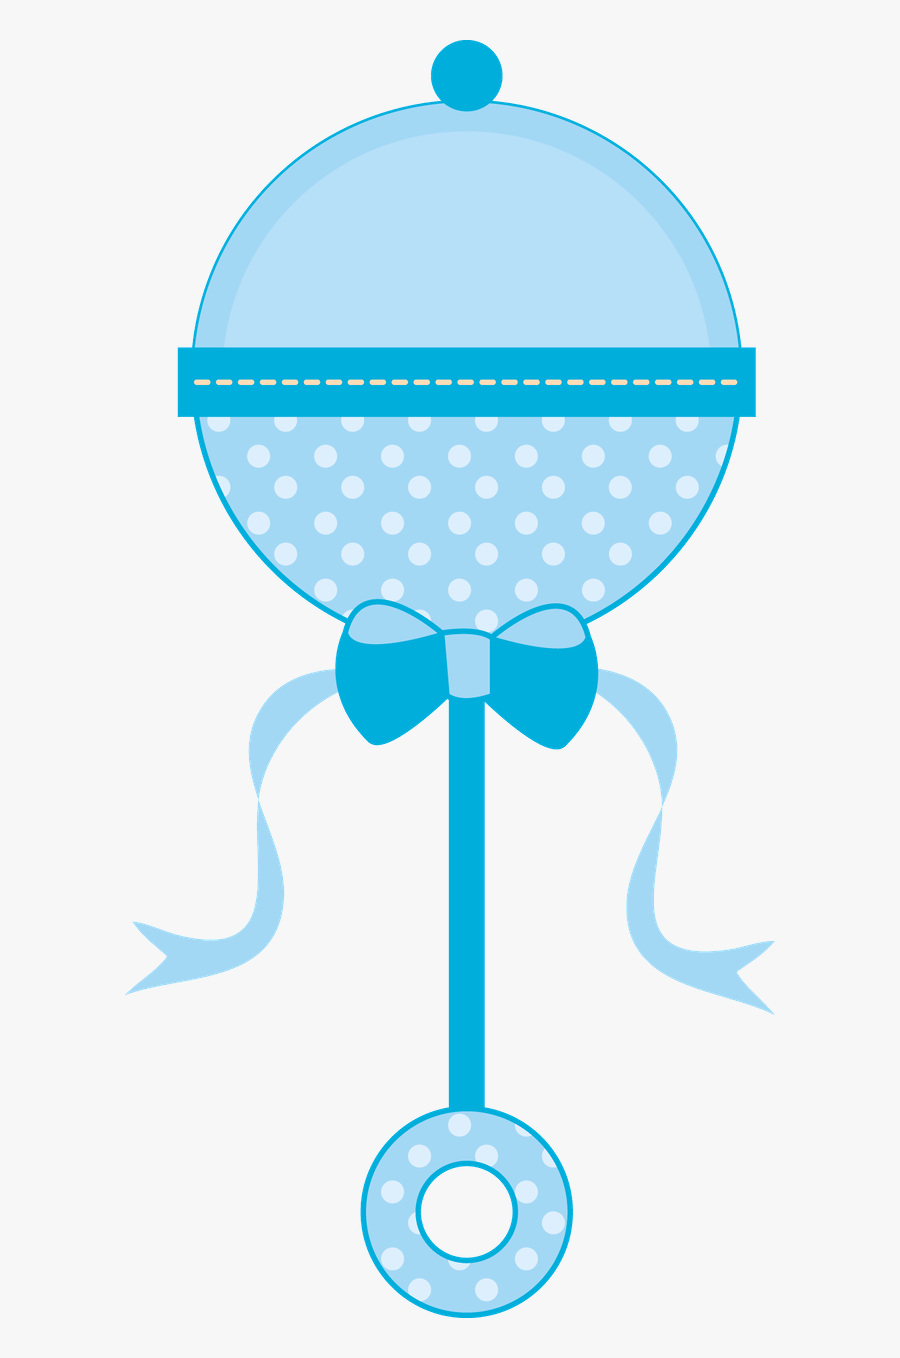 Pink Baby Rattle Png, Transparent Clipart